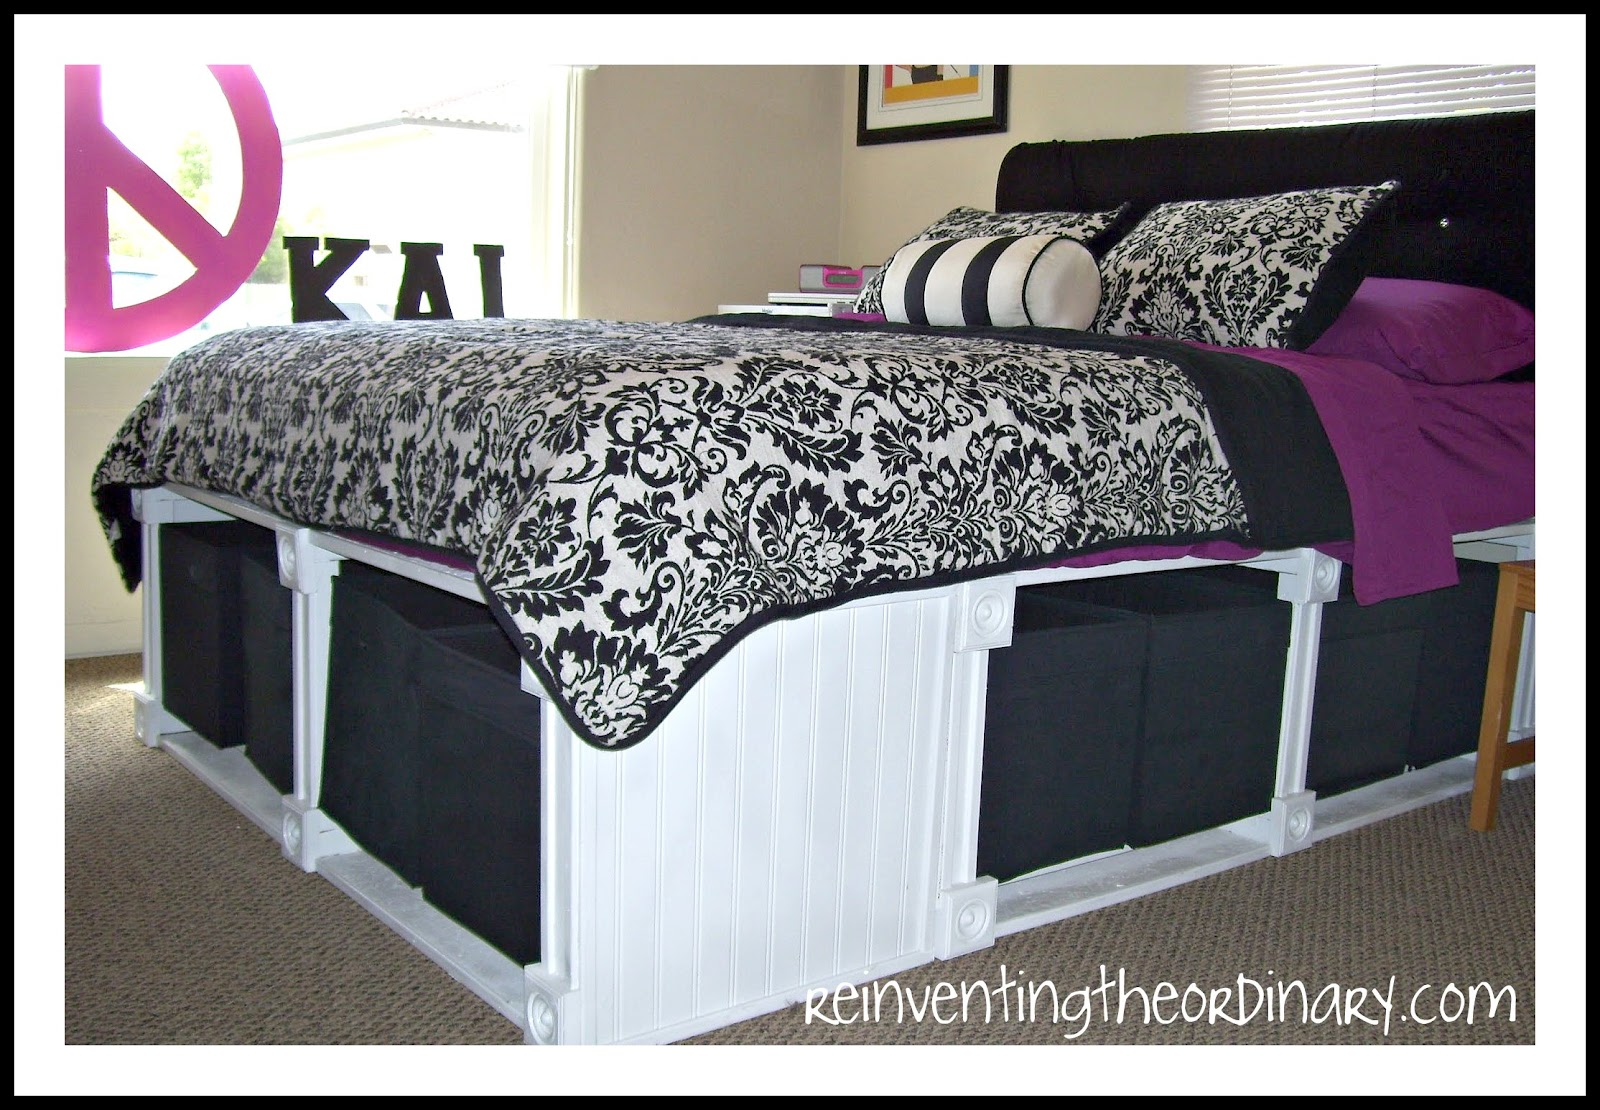 Diy platform bed with storage drawers plans discover woodworking projects - Plans for platform bed with storage drawers ...